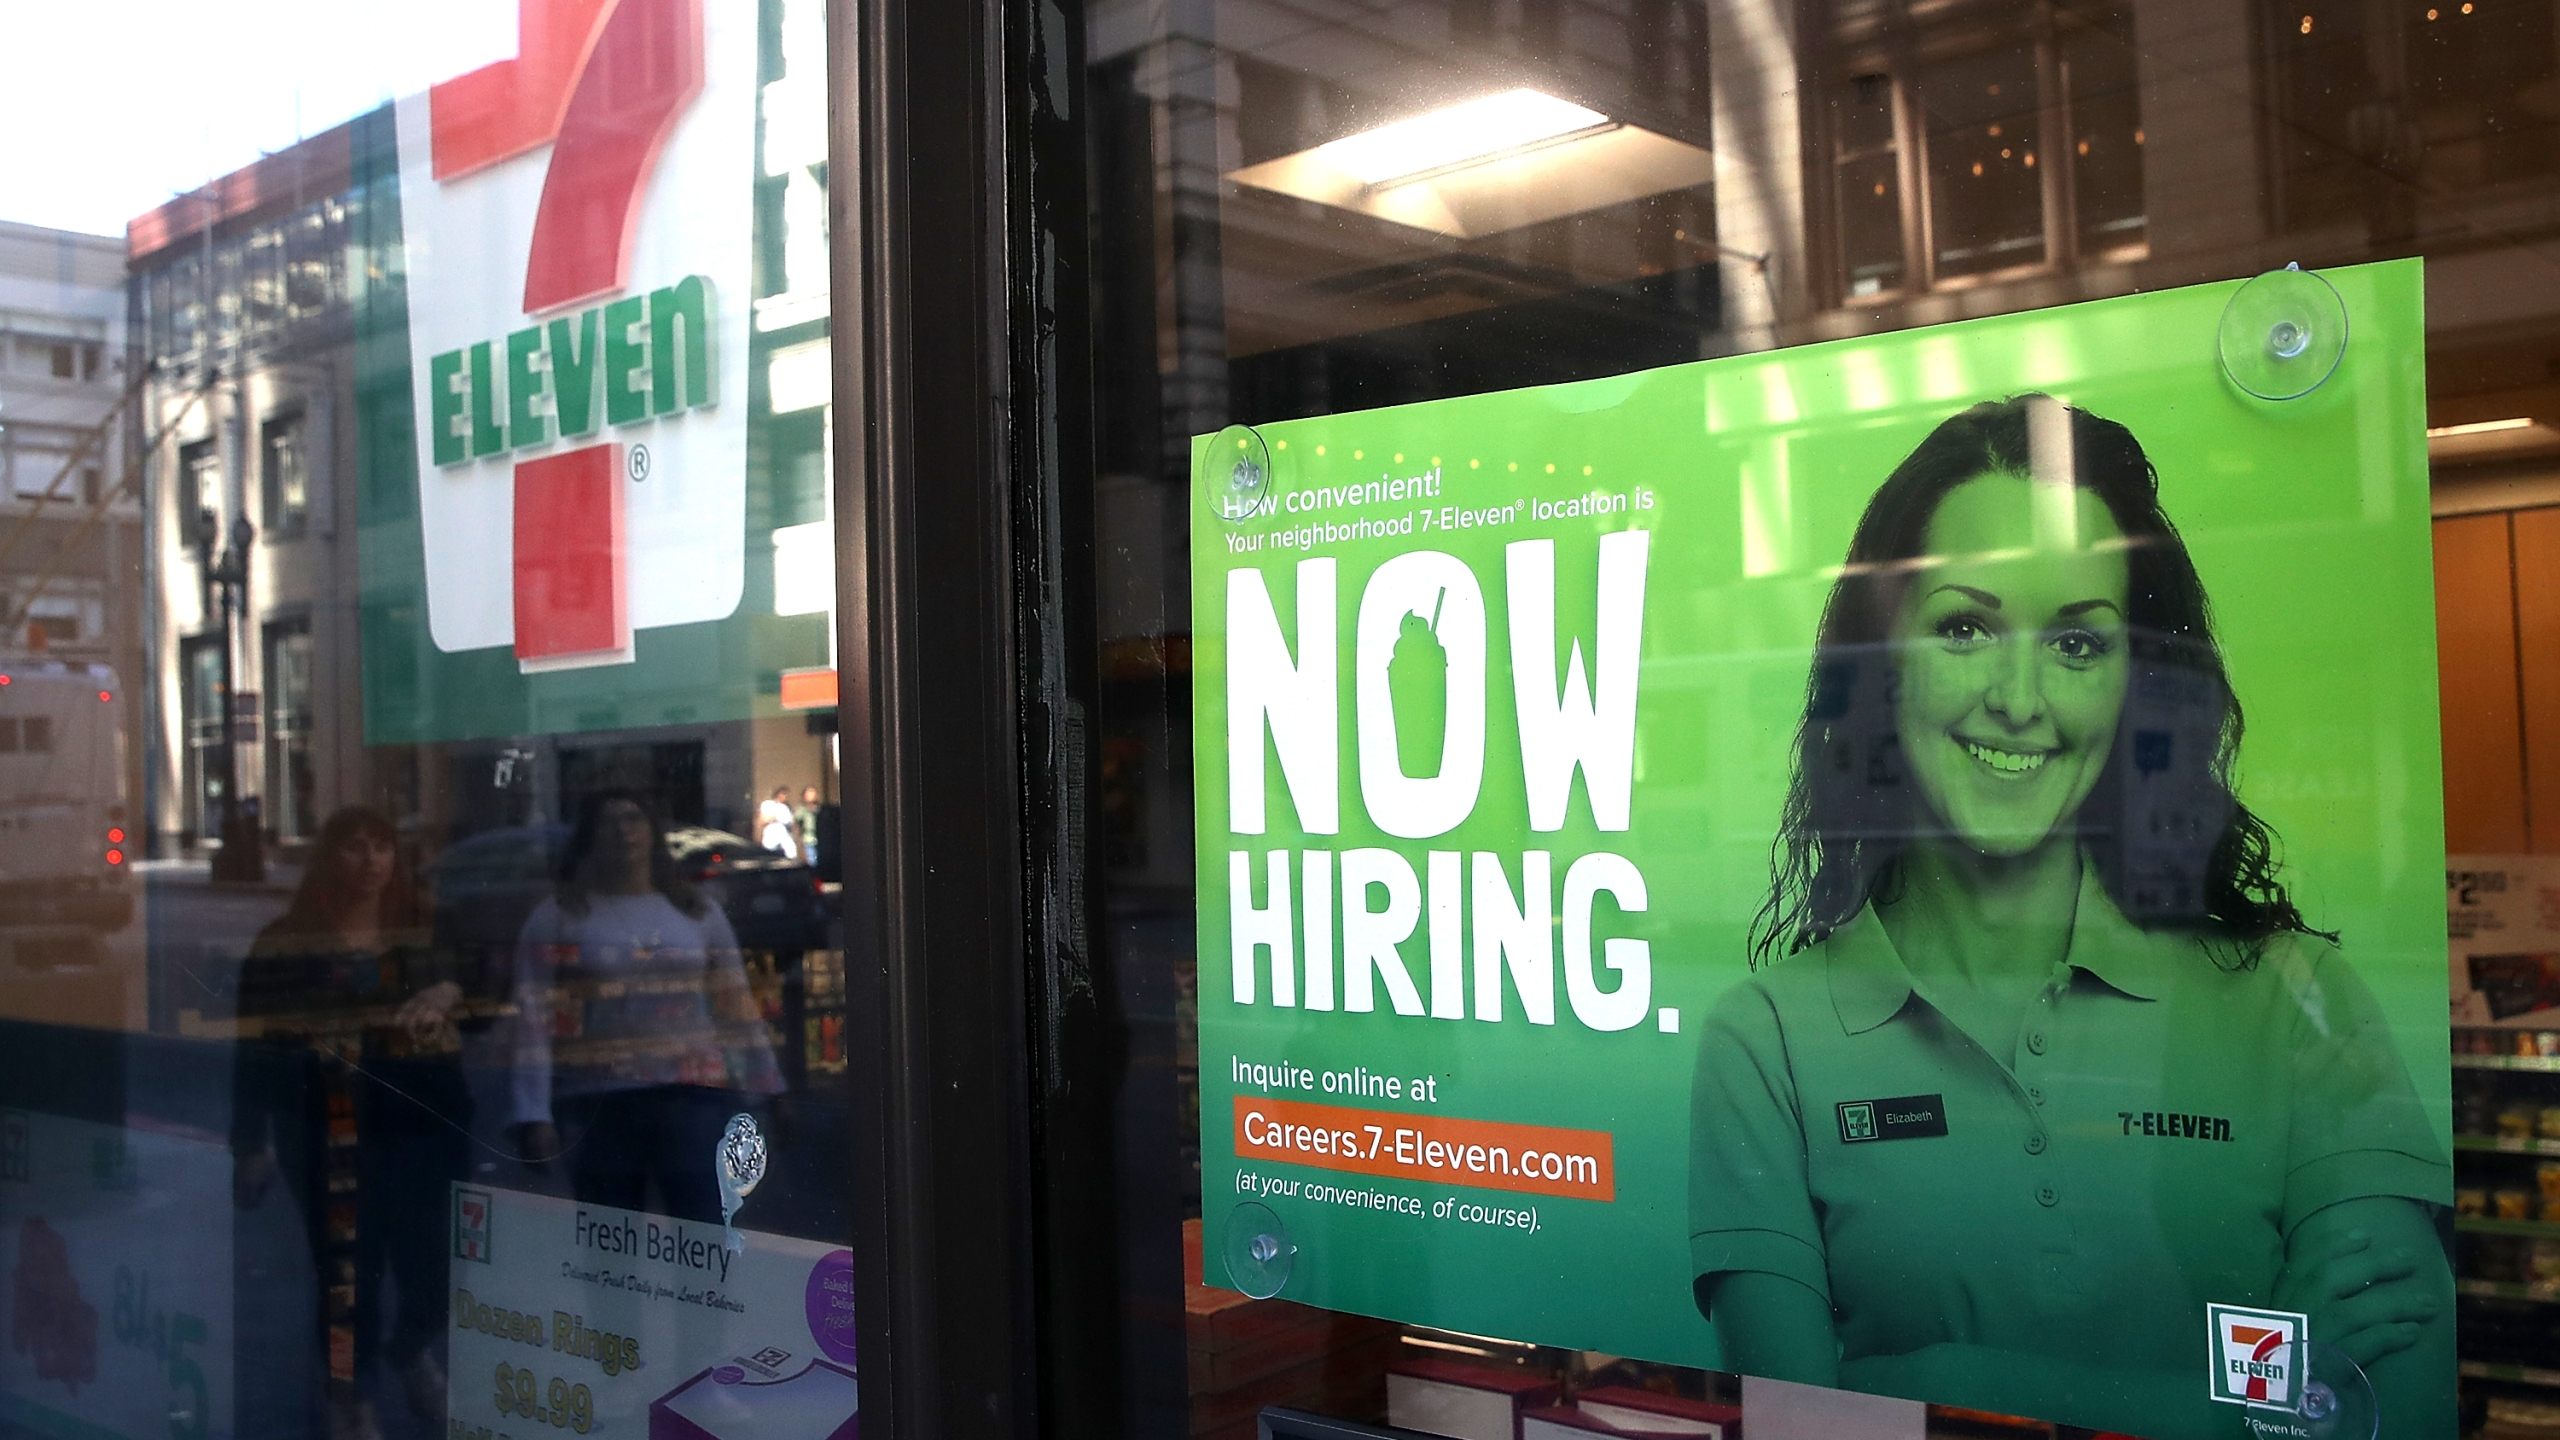 A now hiring sign is posted on the window of a 7-Eleven store on June 1, 2018 in San Francisco. (Credit: Justin Sullivan/Getty Images)